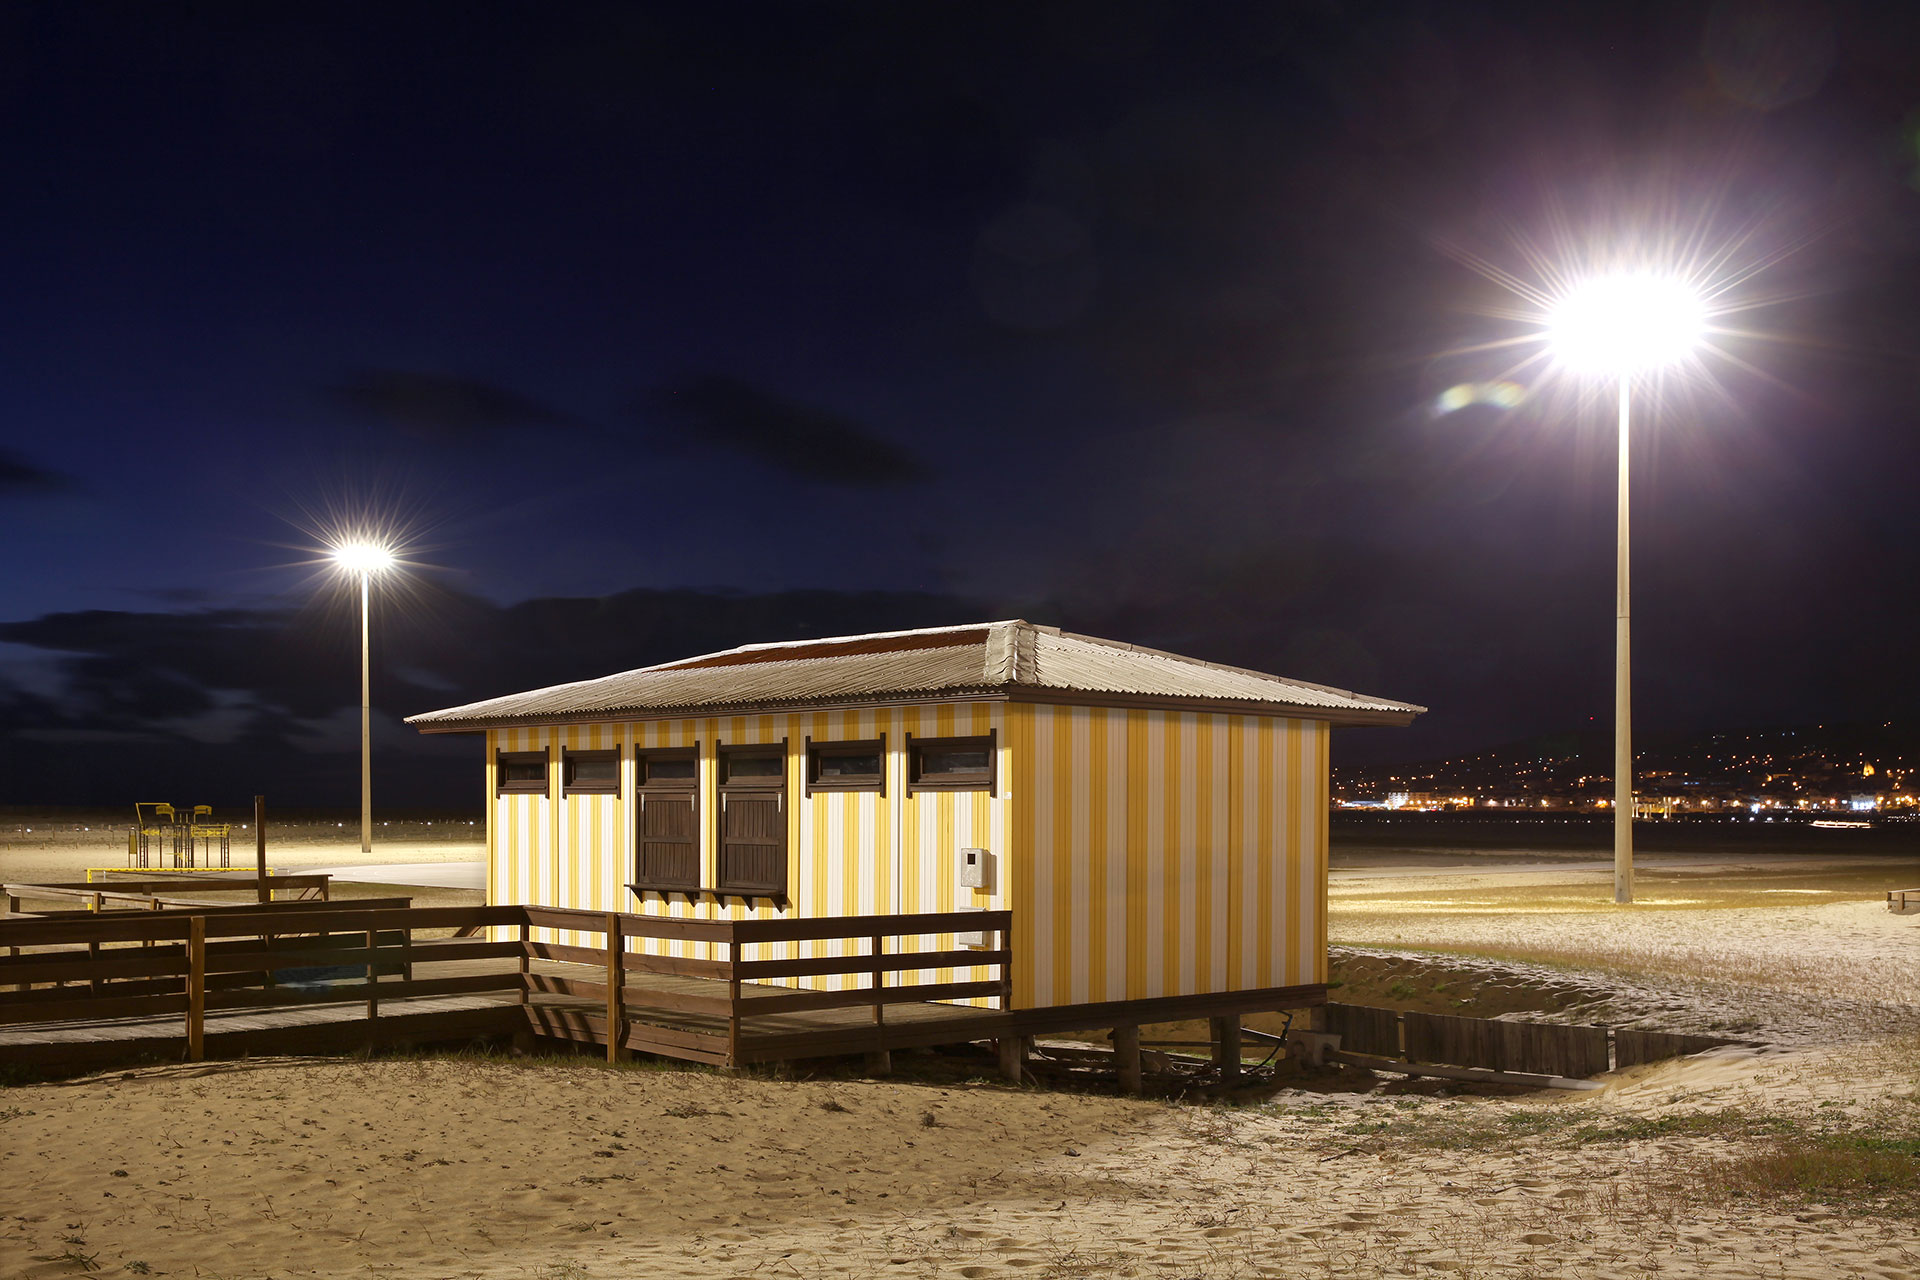 Avento + Owlet IoT control system provide smart lighting solution to ensure safety while protecting Figueira da Foz beach